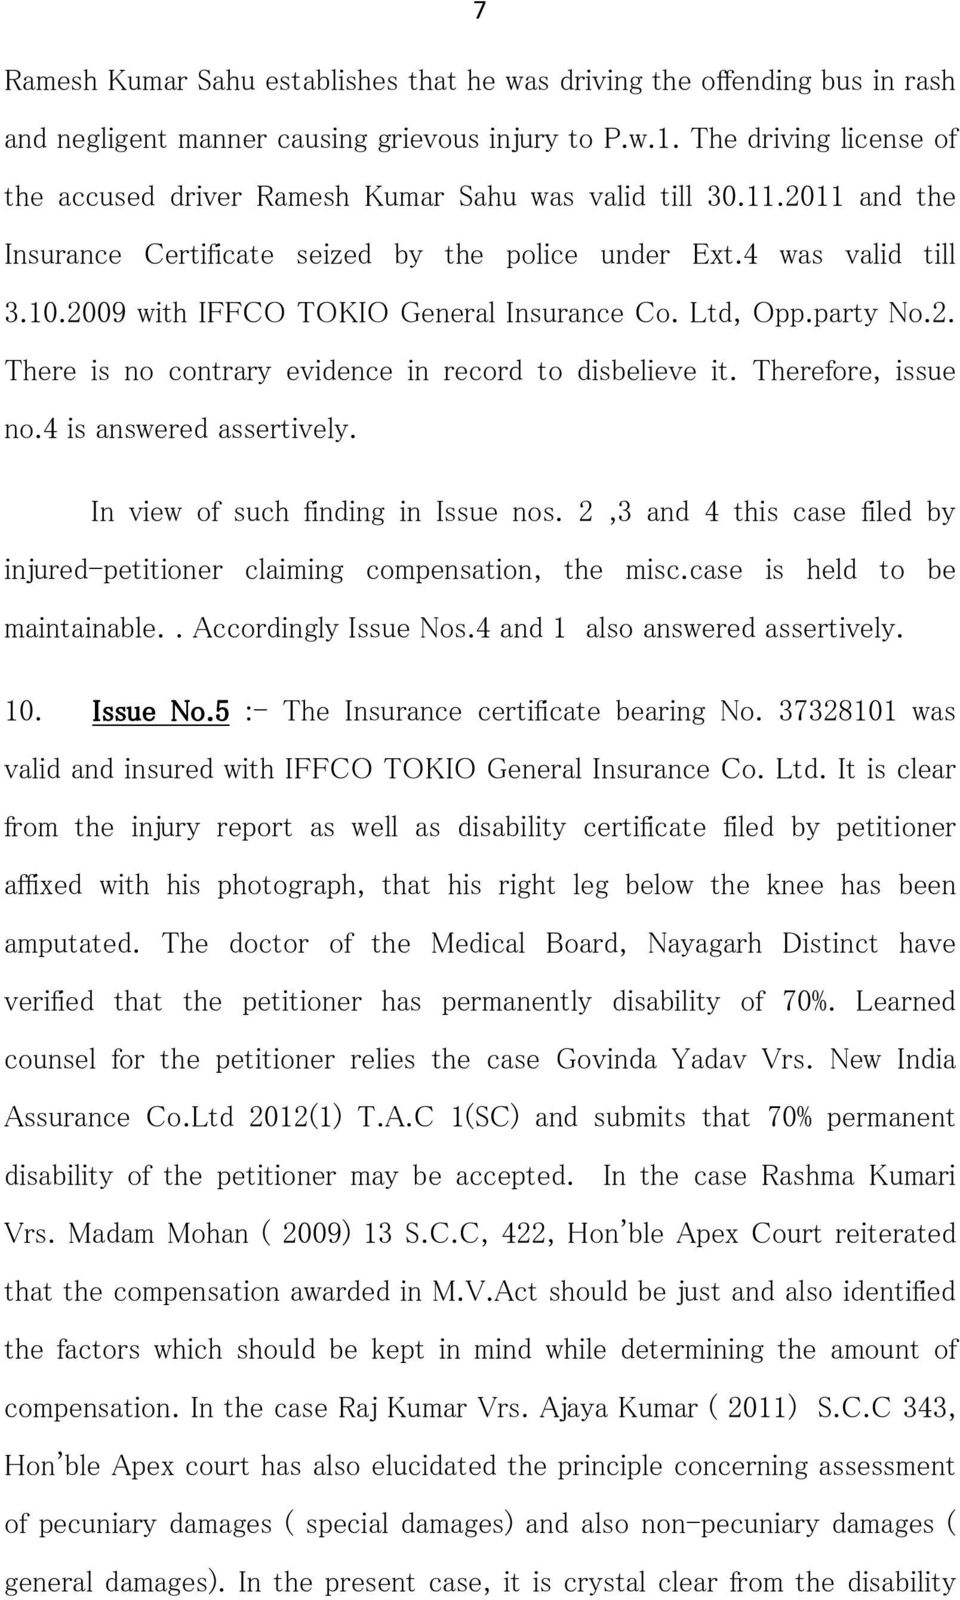 2009 with IFFCO TOKIO General Insurance Co. Ltd, Opp.party No.2. There is no contrary evidence in record to disbelieve it. Therefore, issue no.4 is answered assertively.